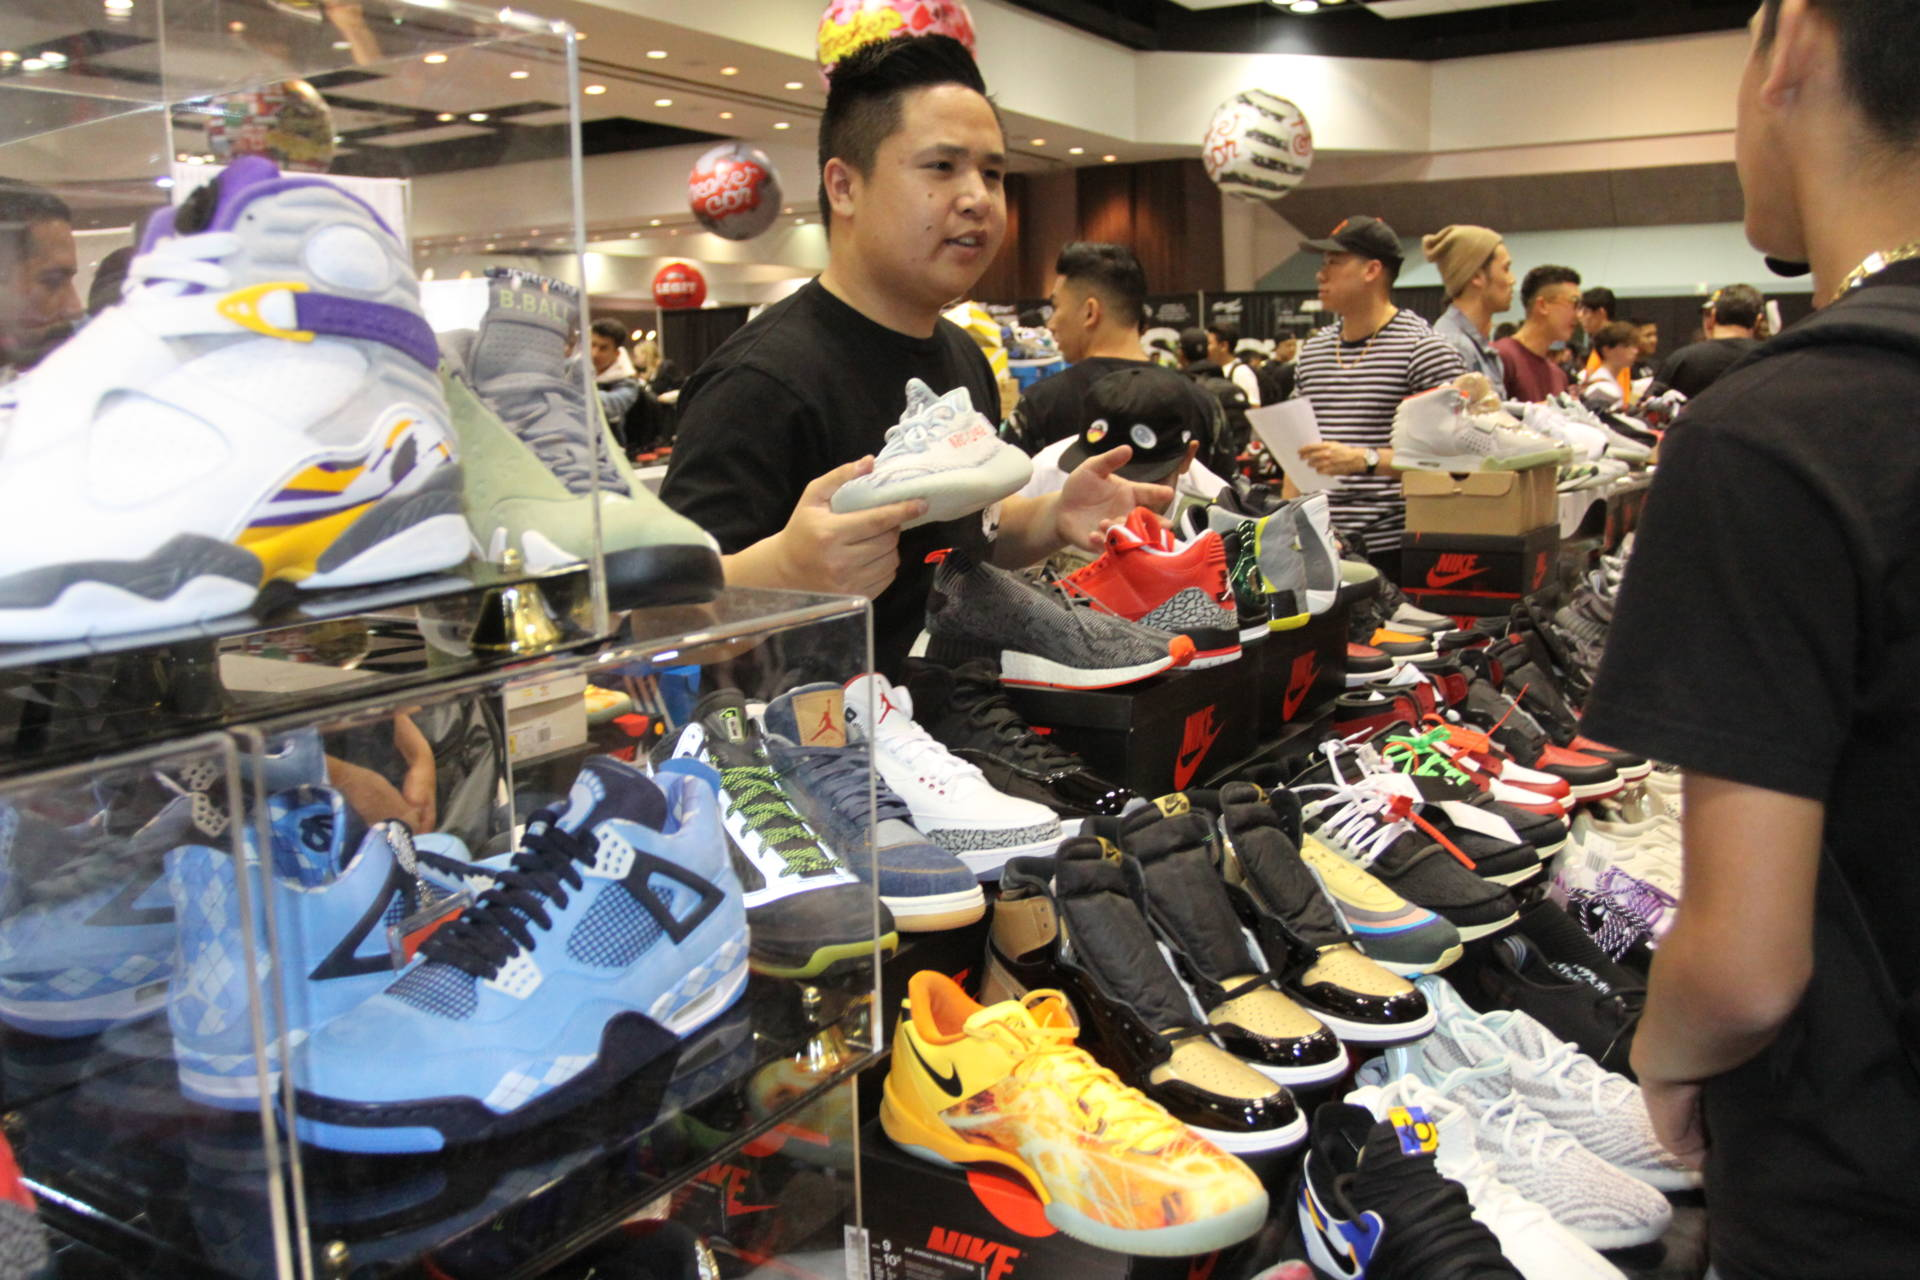 c70dade5b6c3 Shoe Enthusiasts Line Up for South Bay s Sneaker Con Convention ...